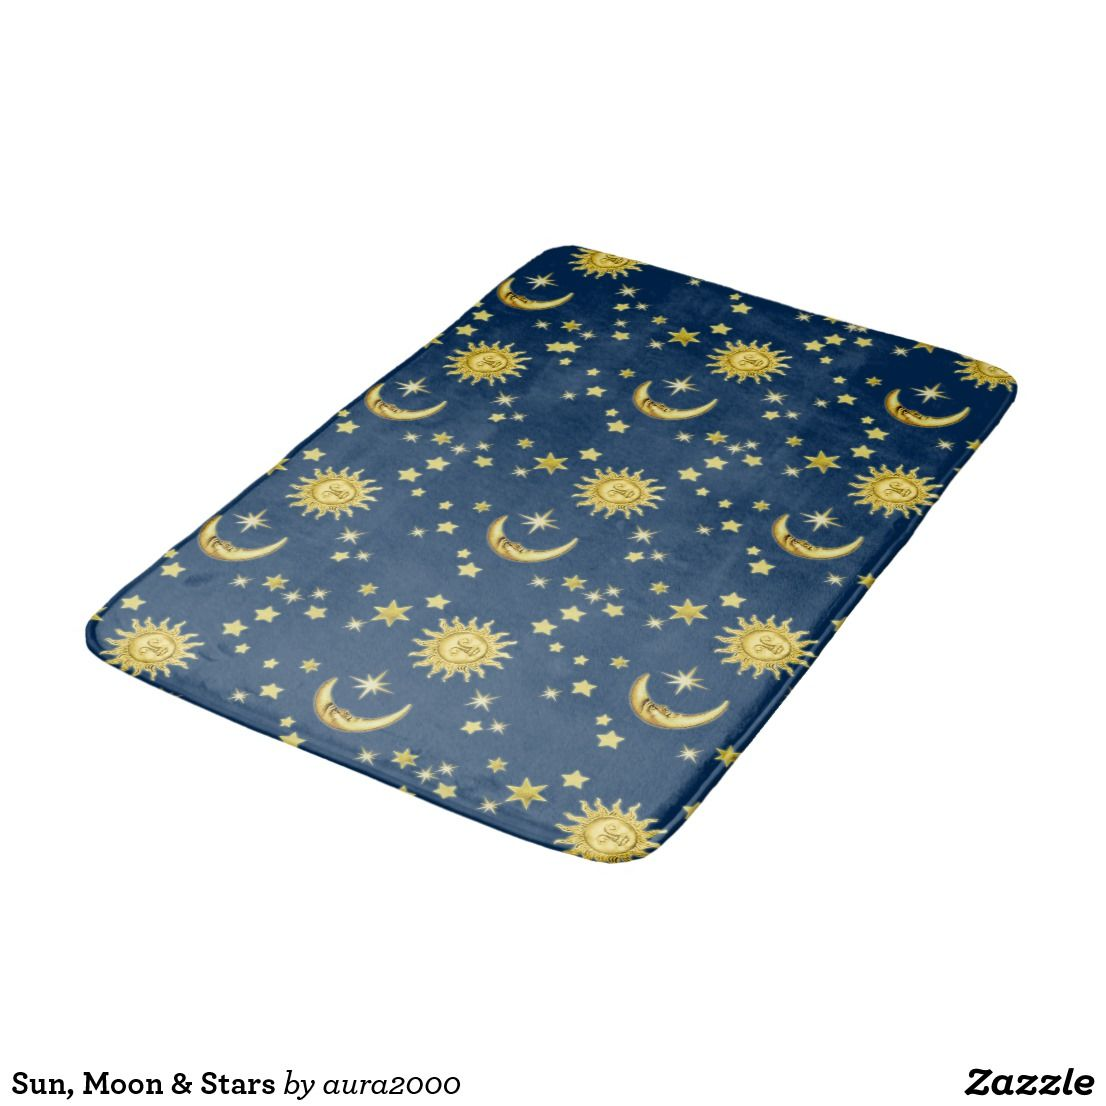 Sun Moon Stars Bathroom Mat Zazzle Com Stars Moon Mirror Wall Stickers Bathroom Accessories Sets